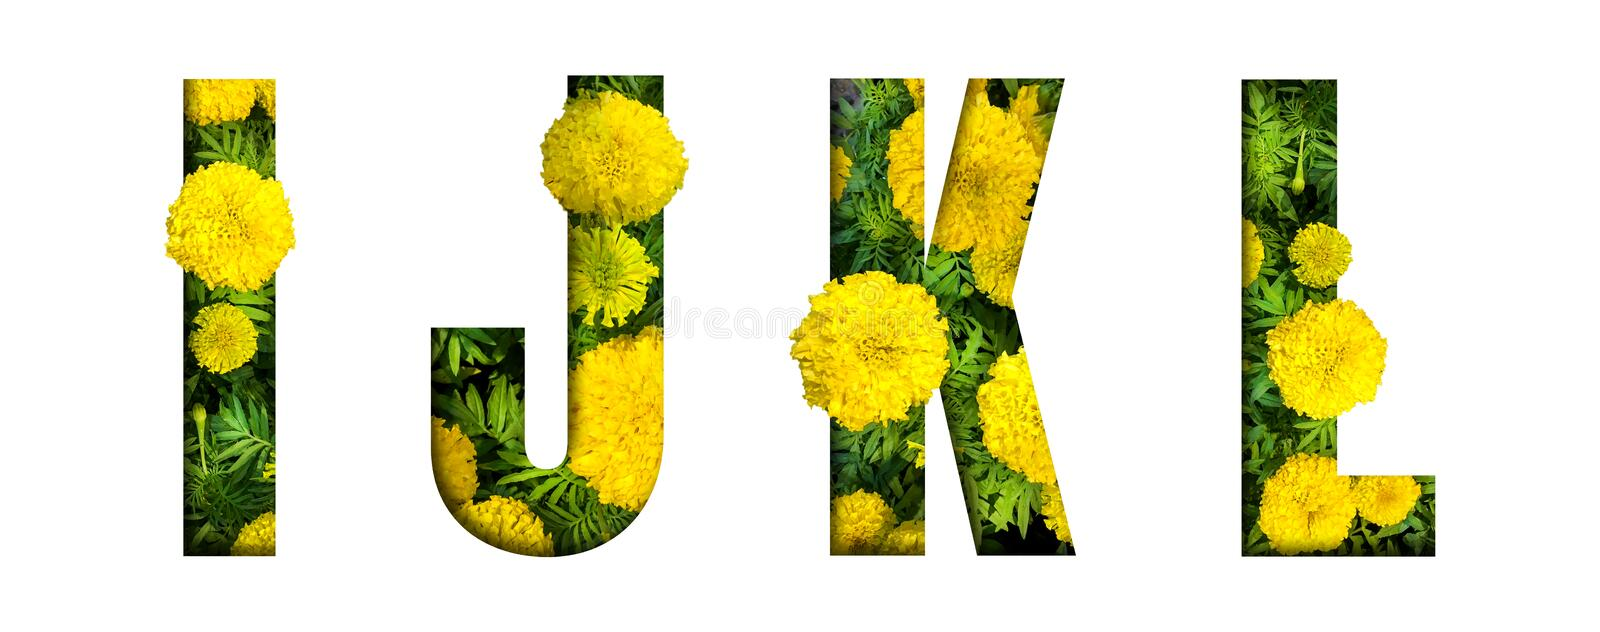 Alphabet I, J, K, L made from marigold flower font isolated on white background. Beautiful character concept. Font royalty free stock photo